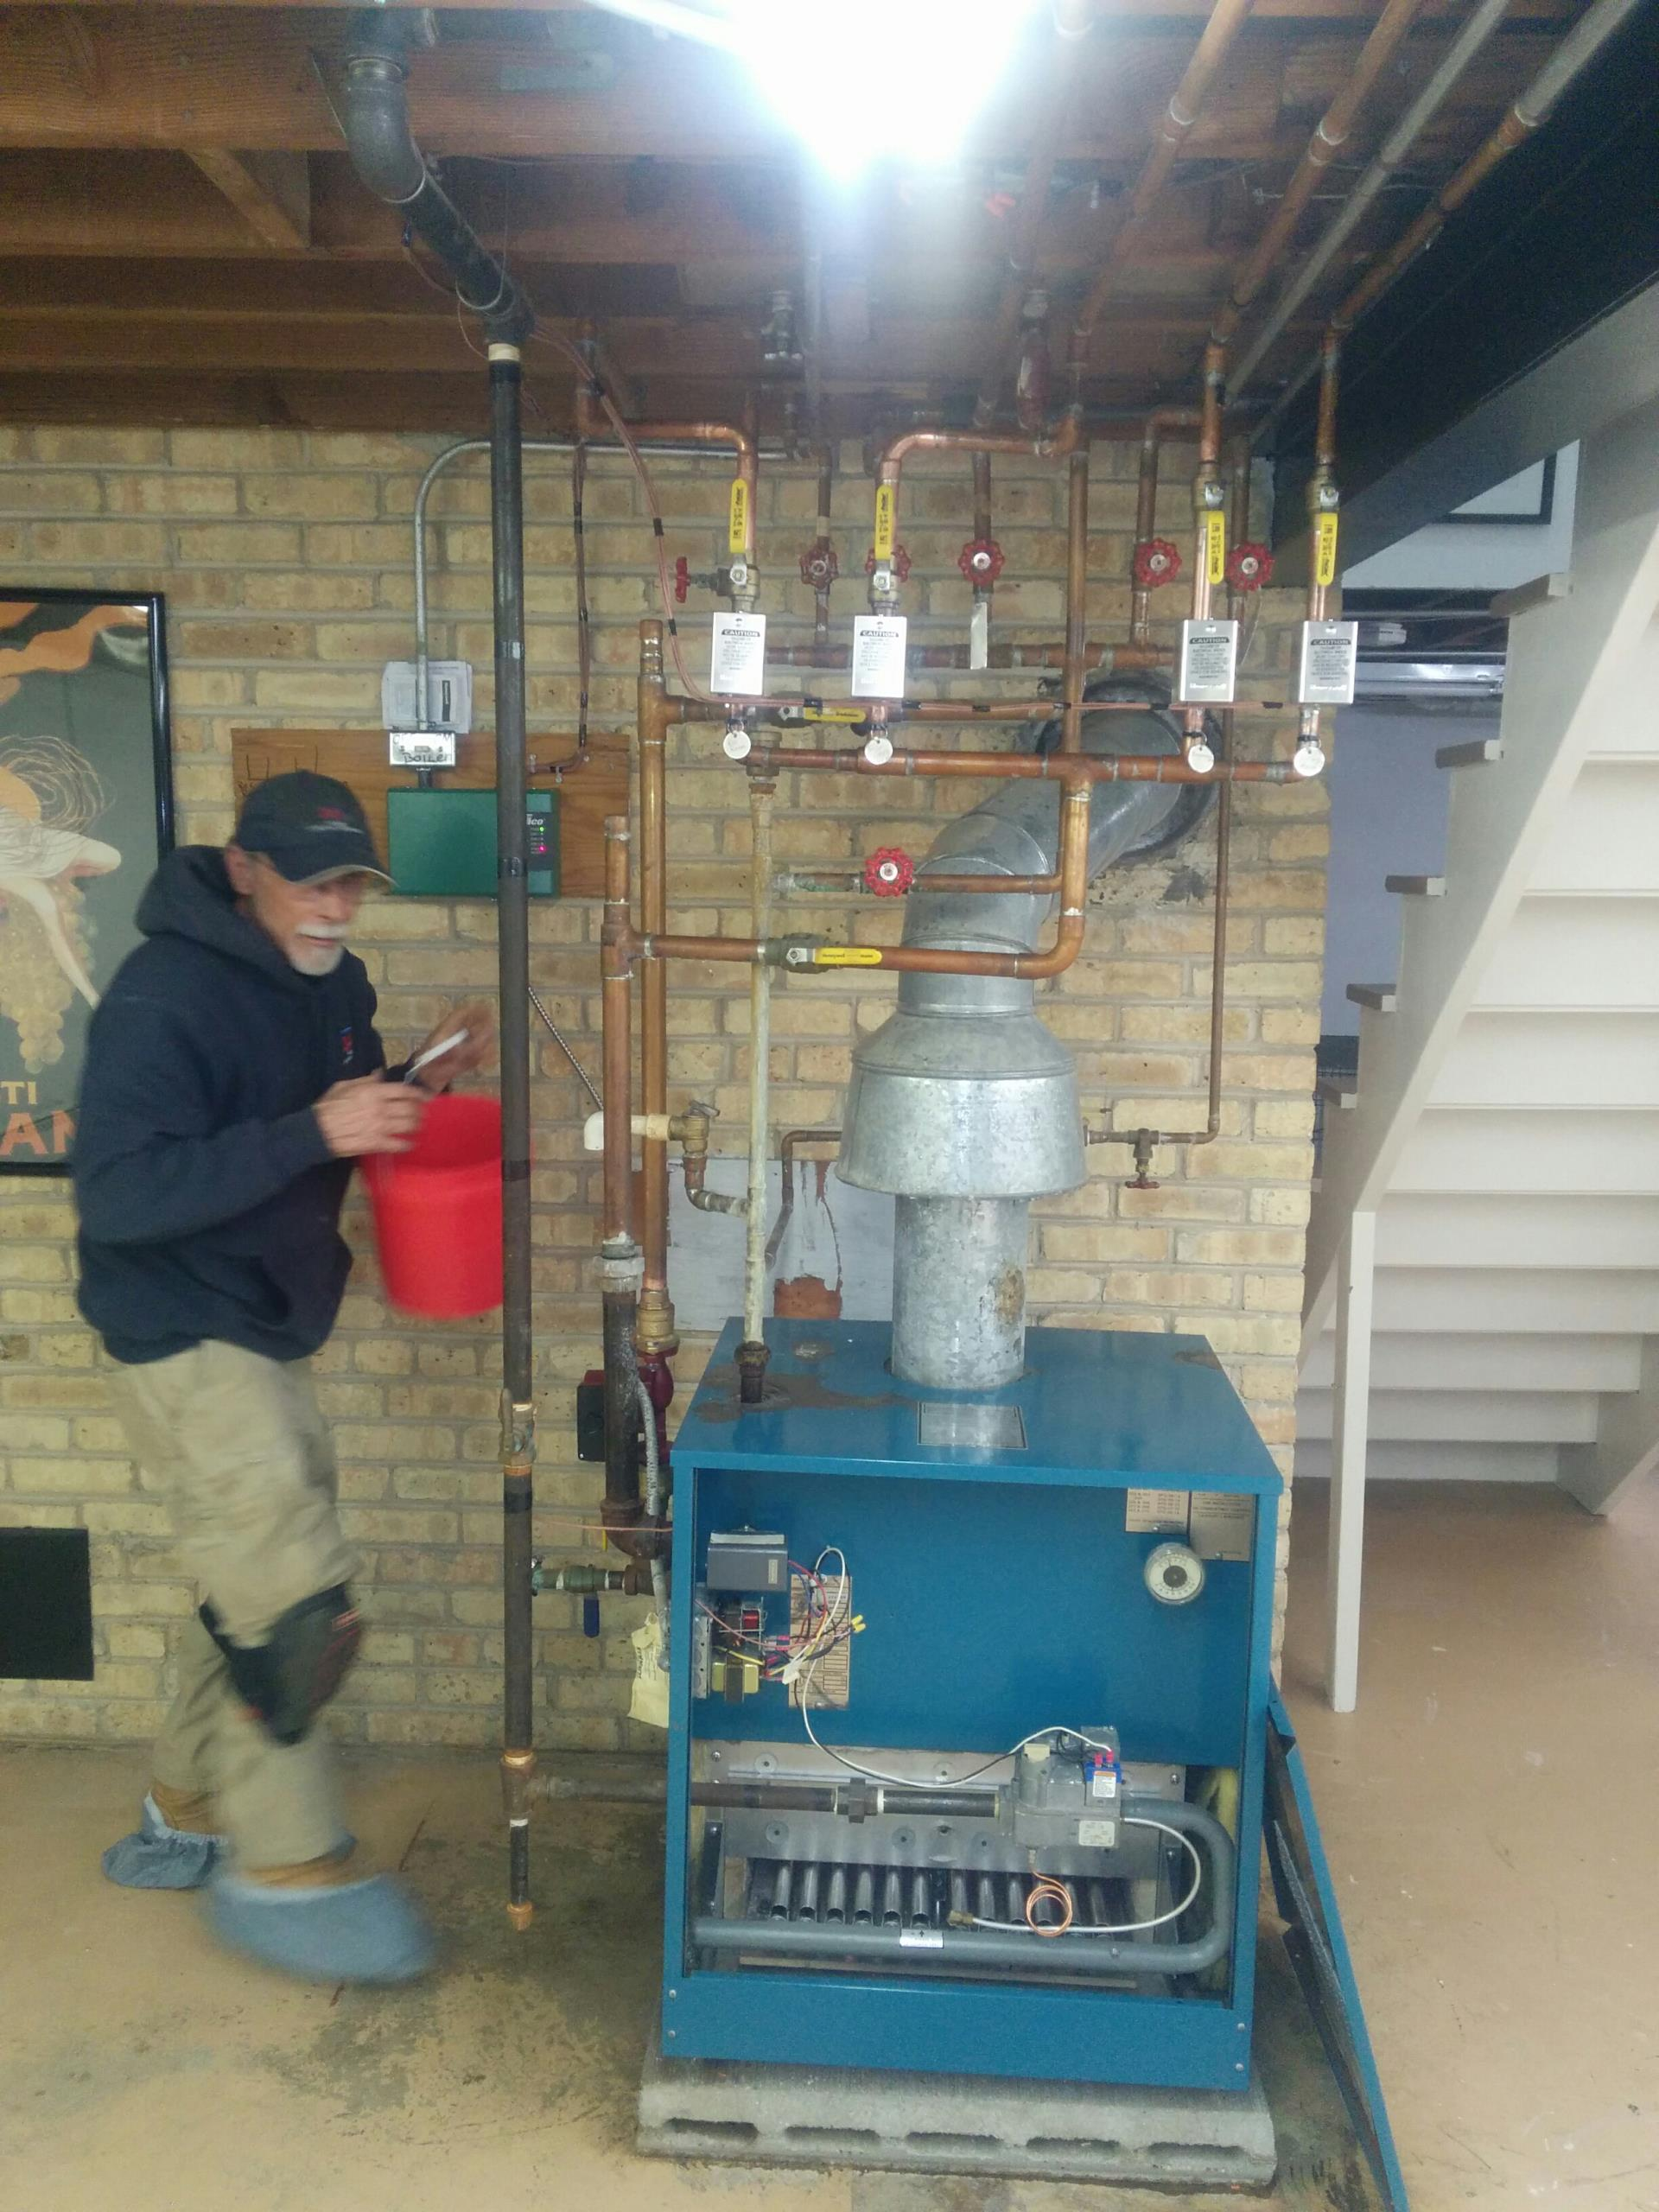 Barrington, IL - Boiler repairs, breathing new life into an old boiler!